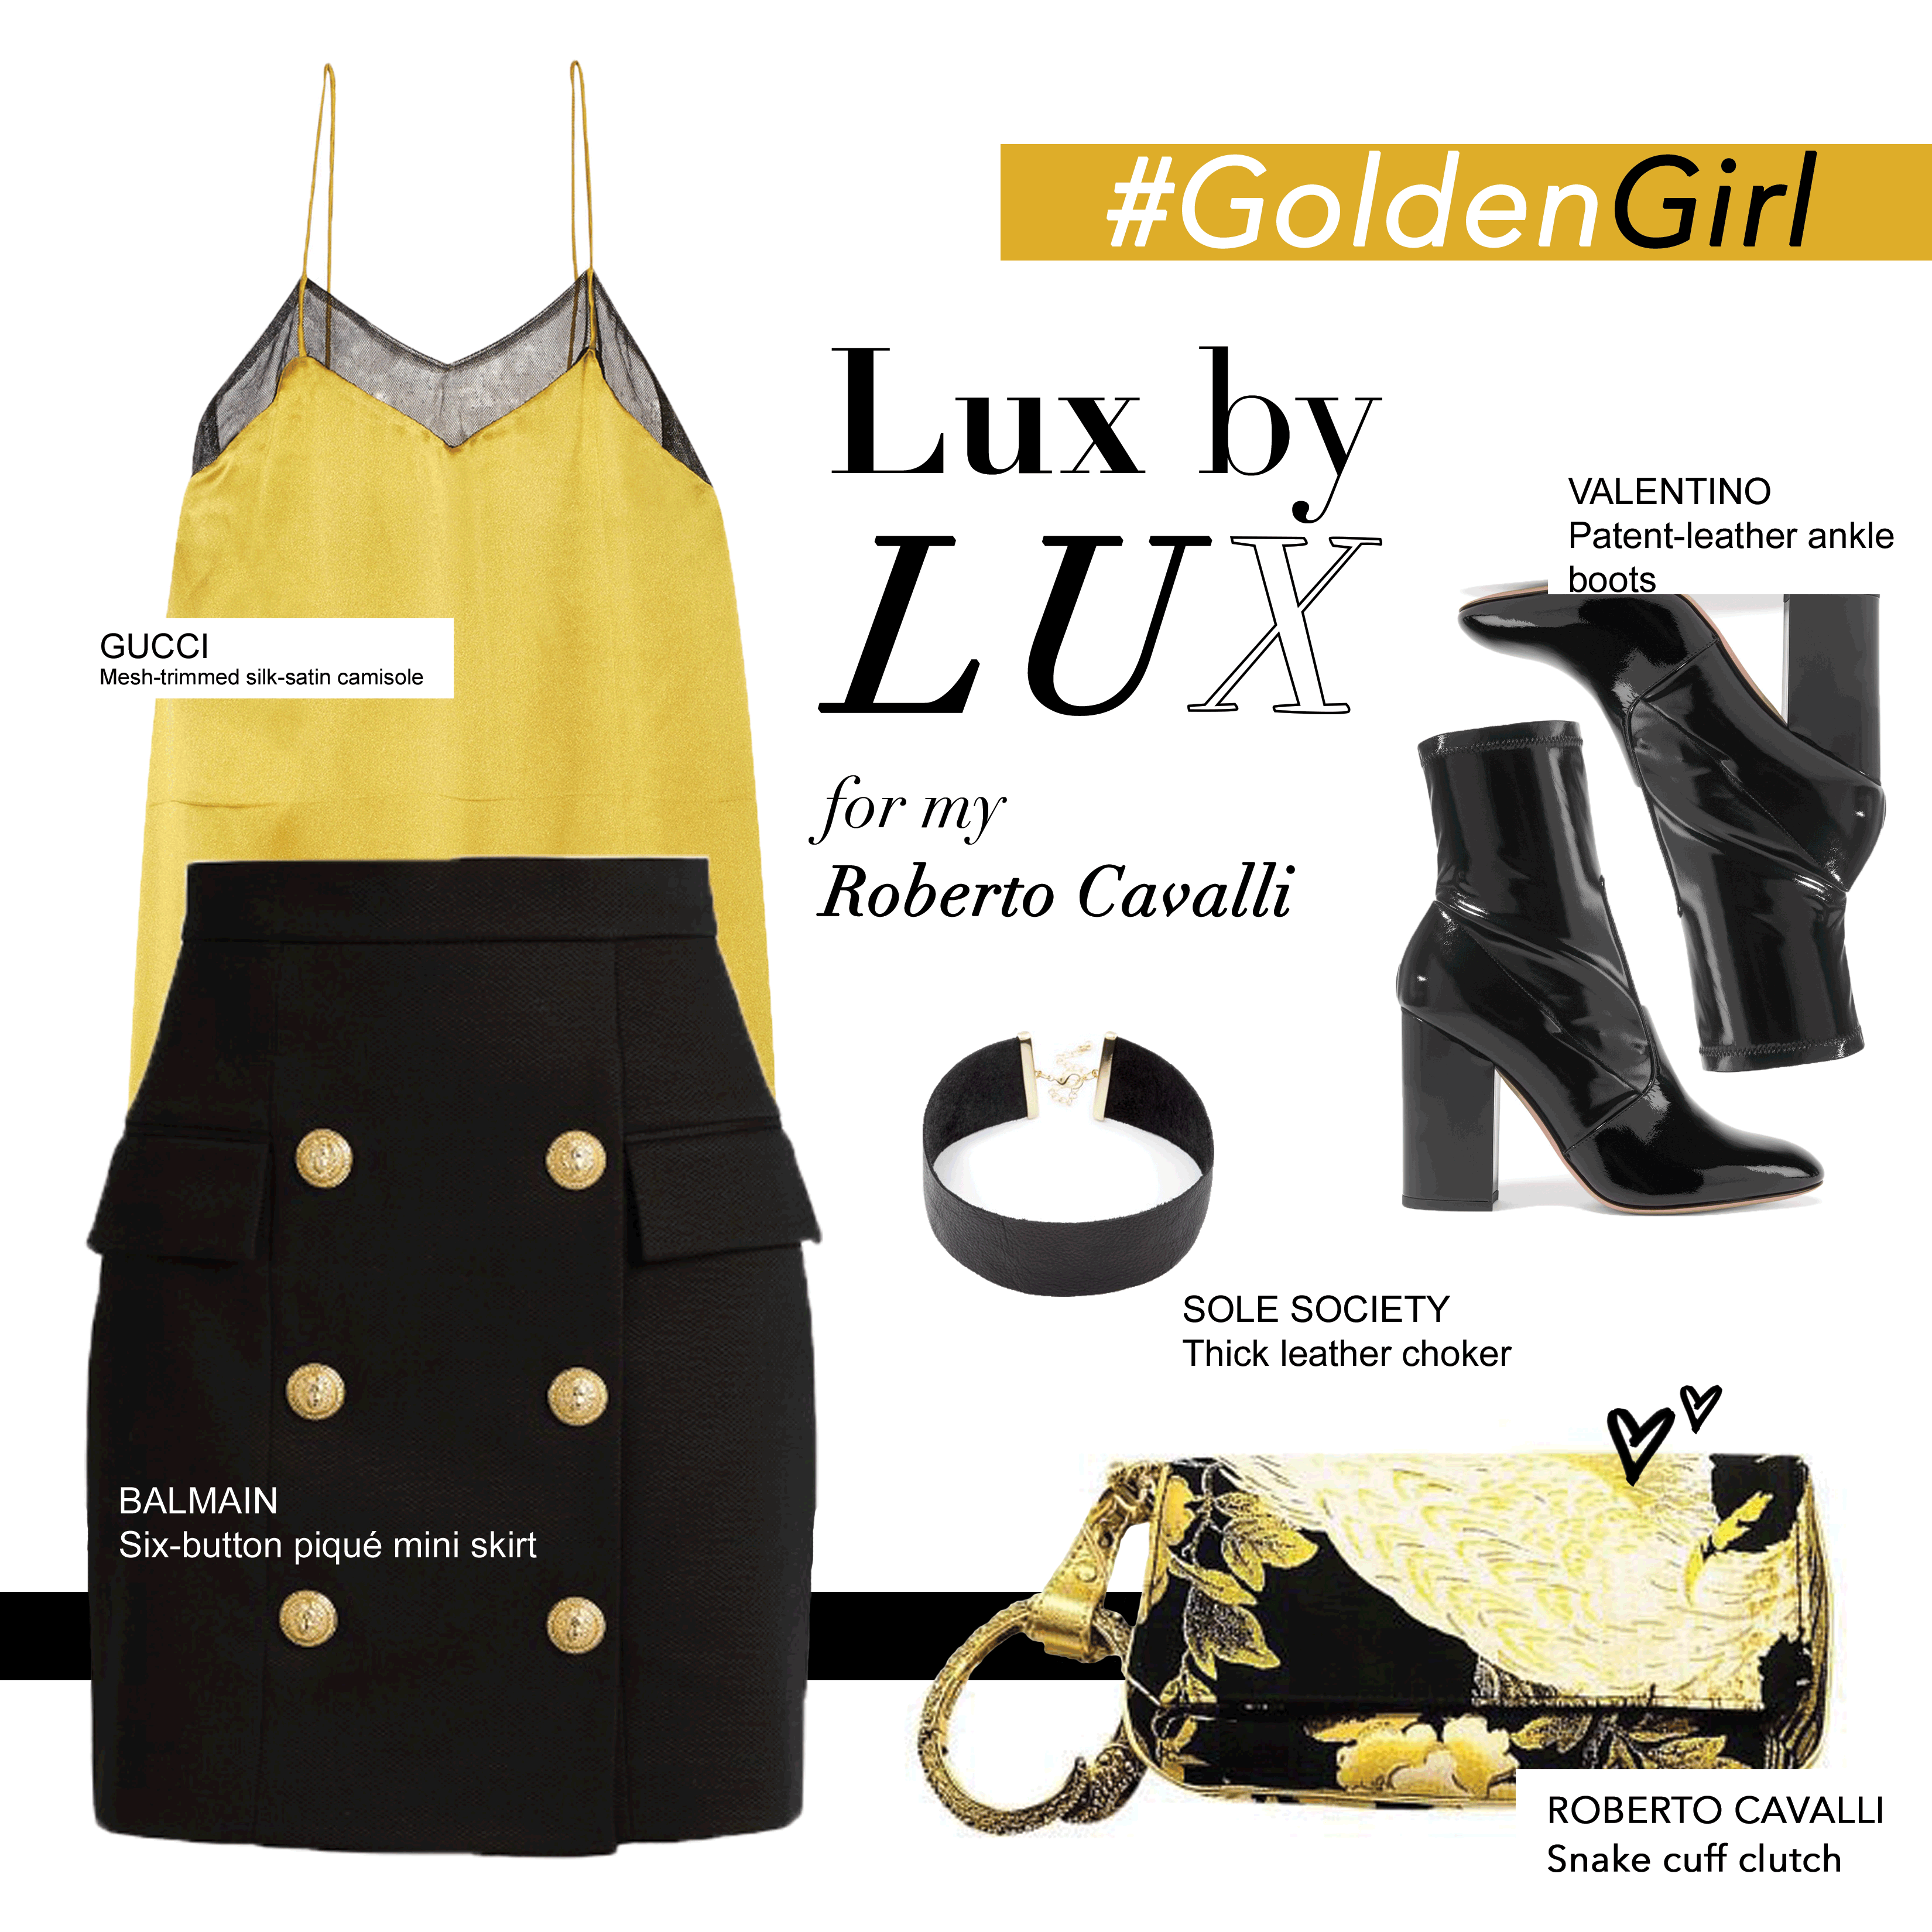 Gold silk gucci top with a Balmain skirt with gold button detail paired with Valentino ankle booties and our Roberto Cavalli. Shop our purse now at www.luxsecondchance.com